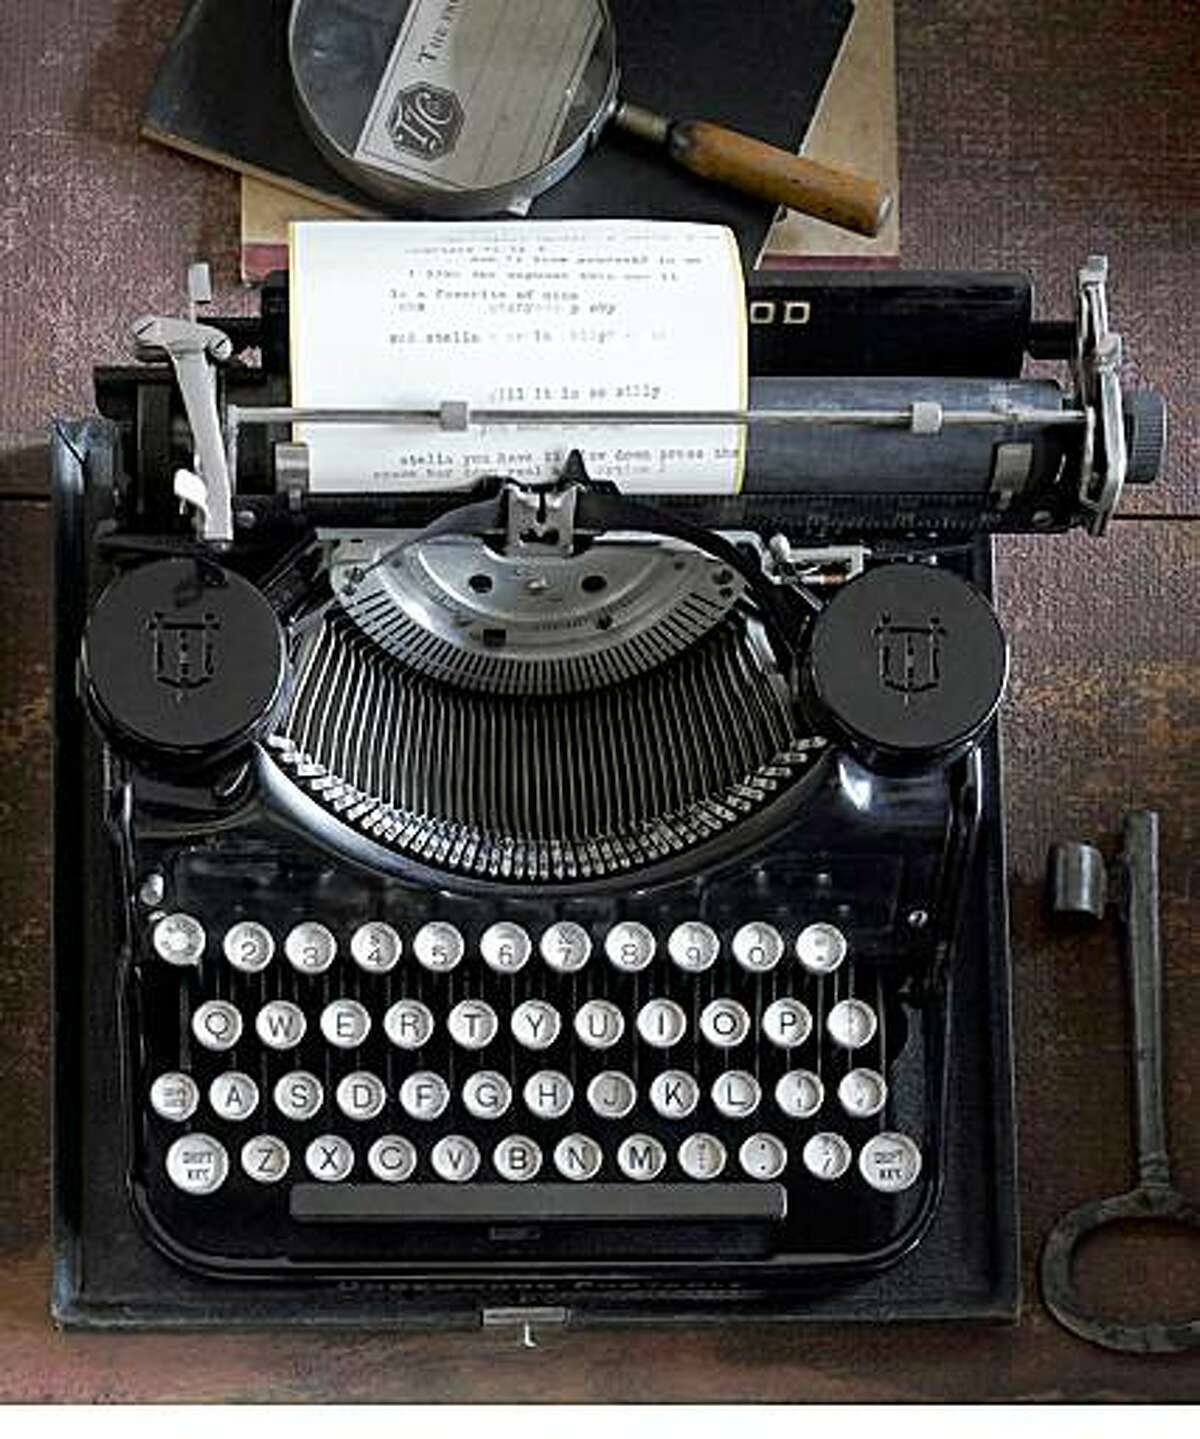 Underwood typewriter from the 1920s, $175, at the Perish Trust in San Francisco.